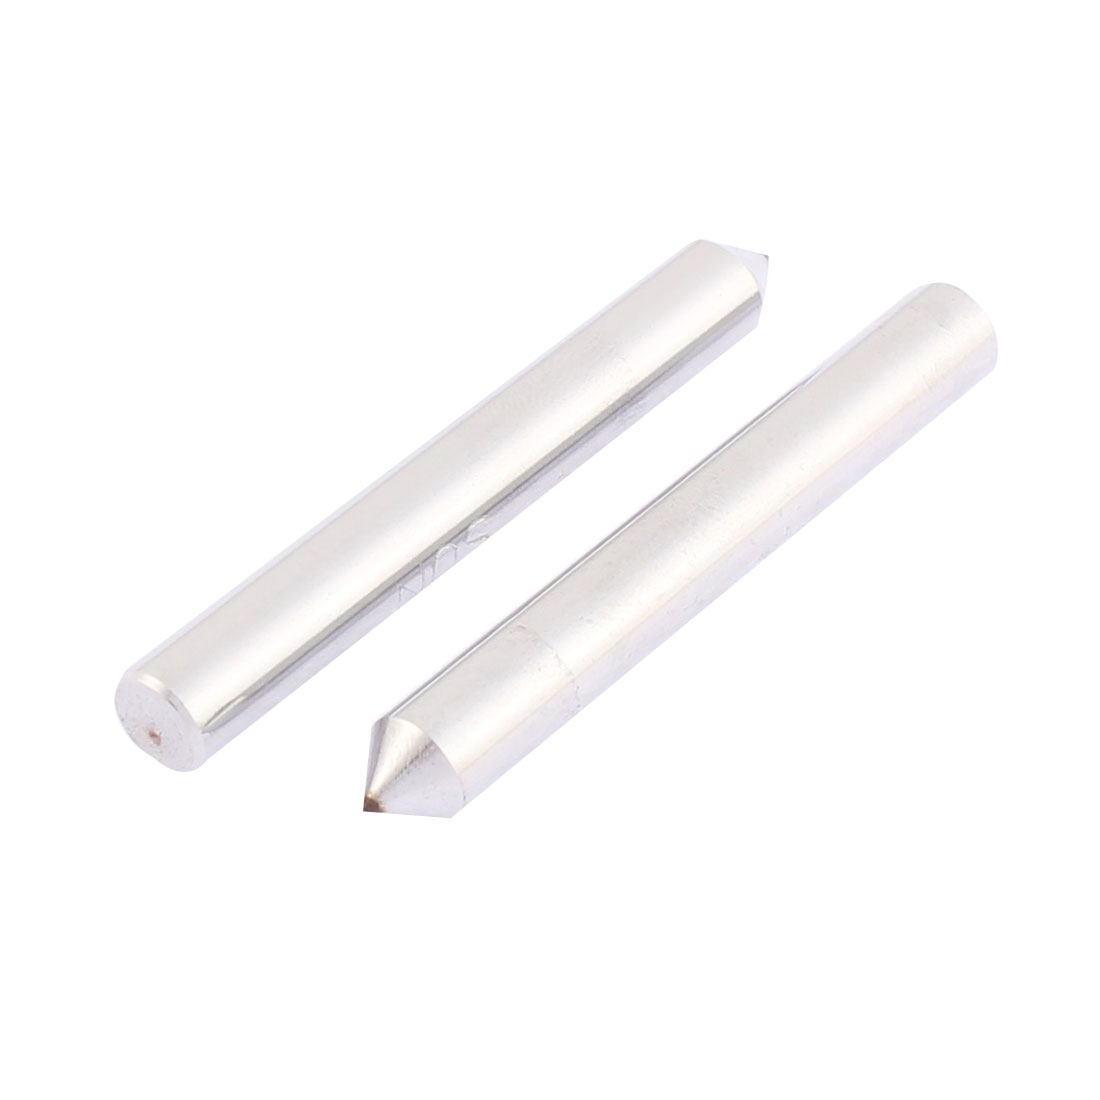 6.3mm Dia 48mm Length 0.50mm Tip Round Shank Side Wheel Grinding Wheel Diamond Dresser Pen 2 Pcs Silver Tone